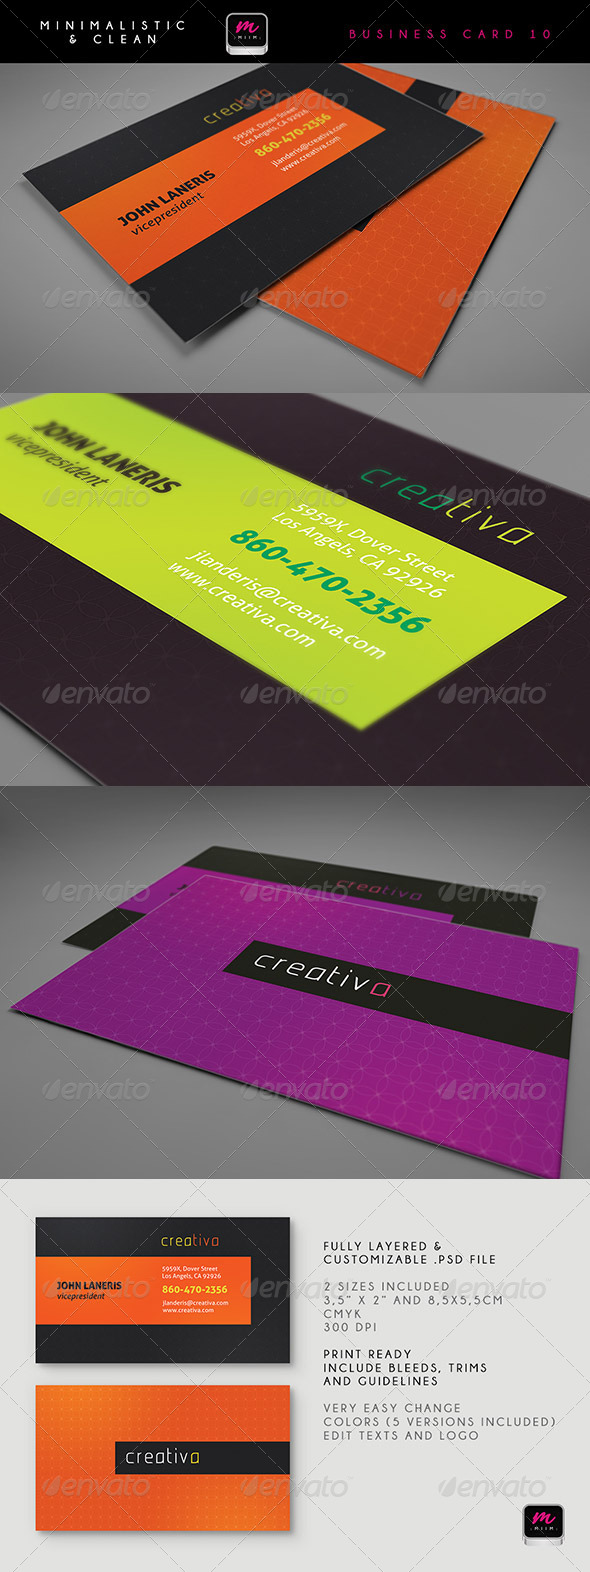 Clean Business Card Template 10 - Corporate Business Cards